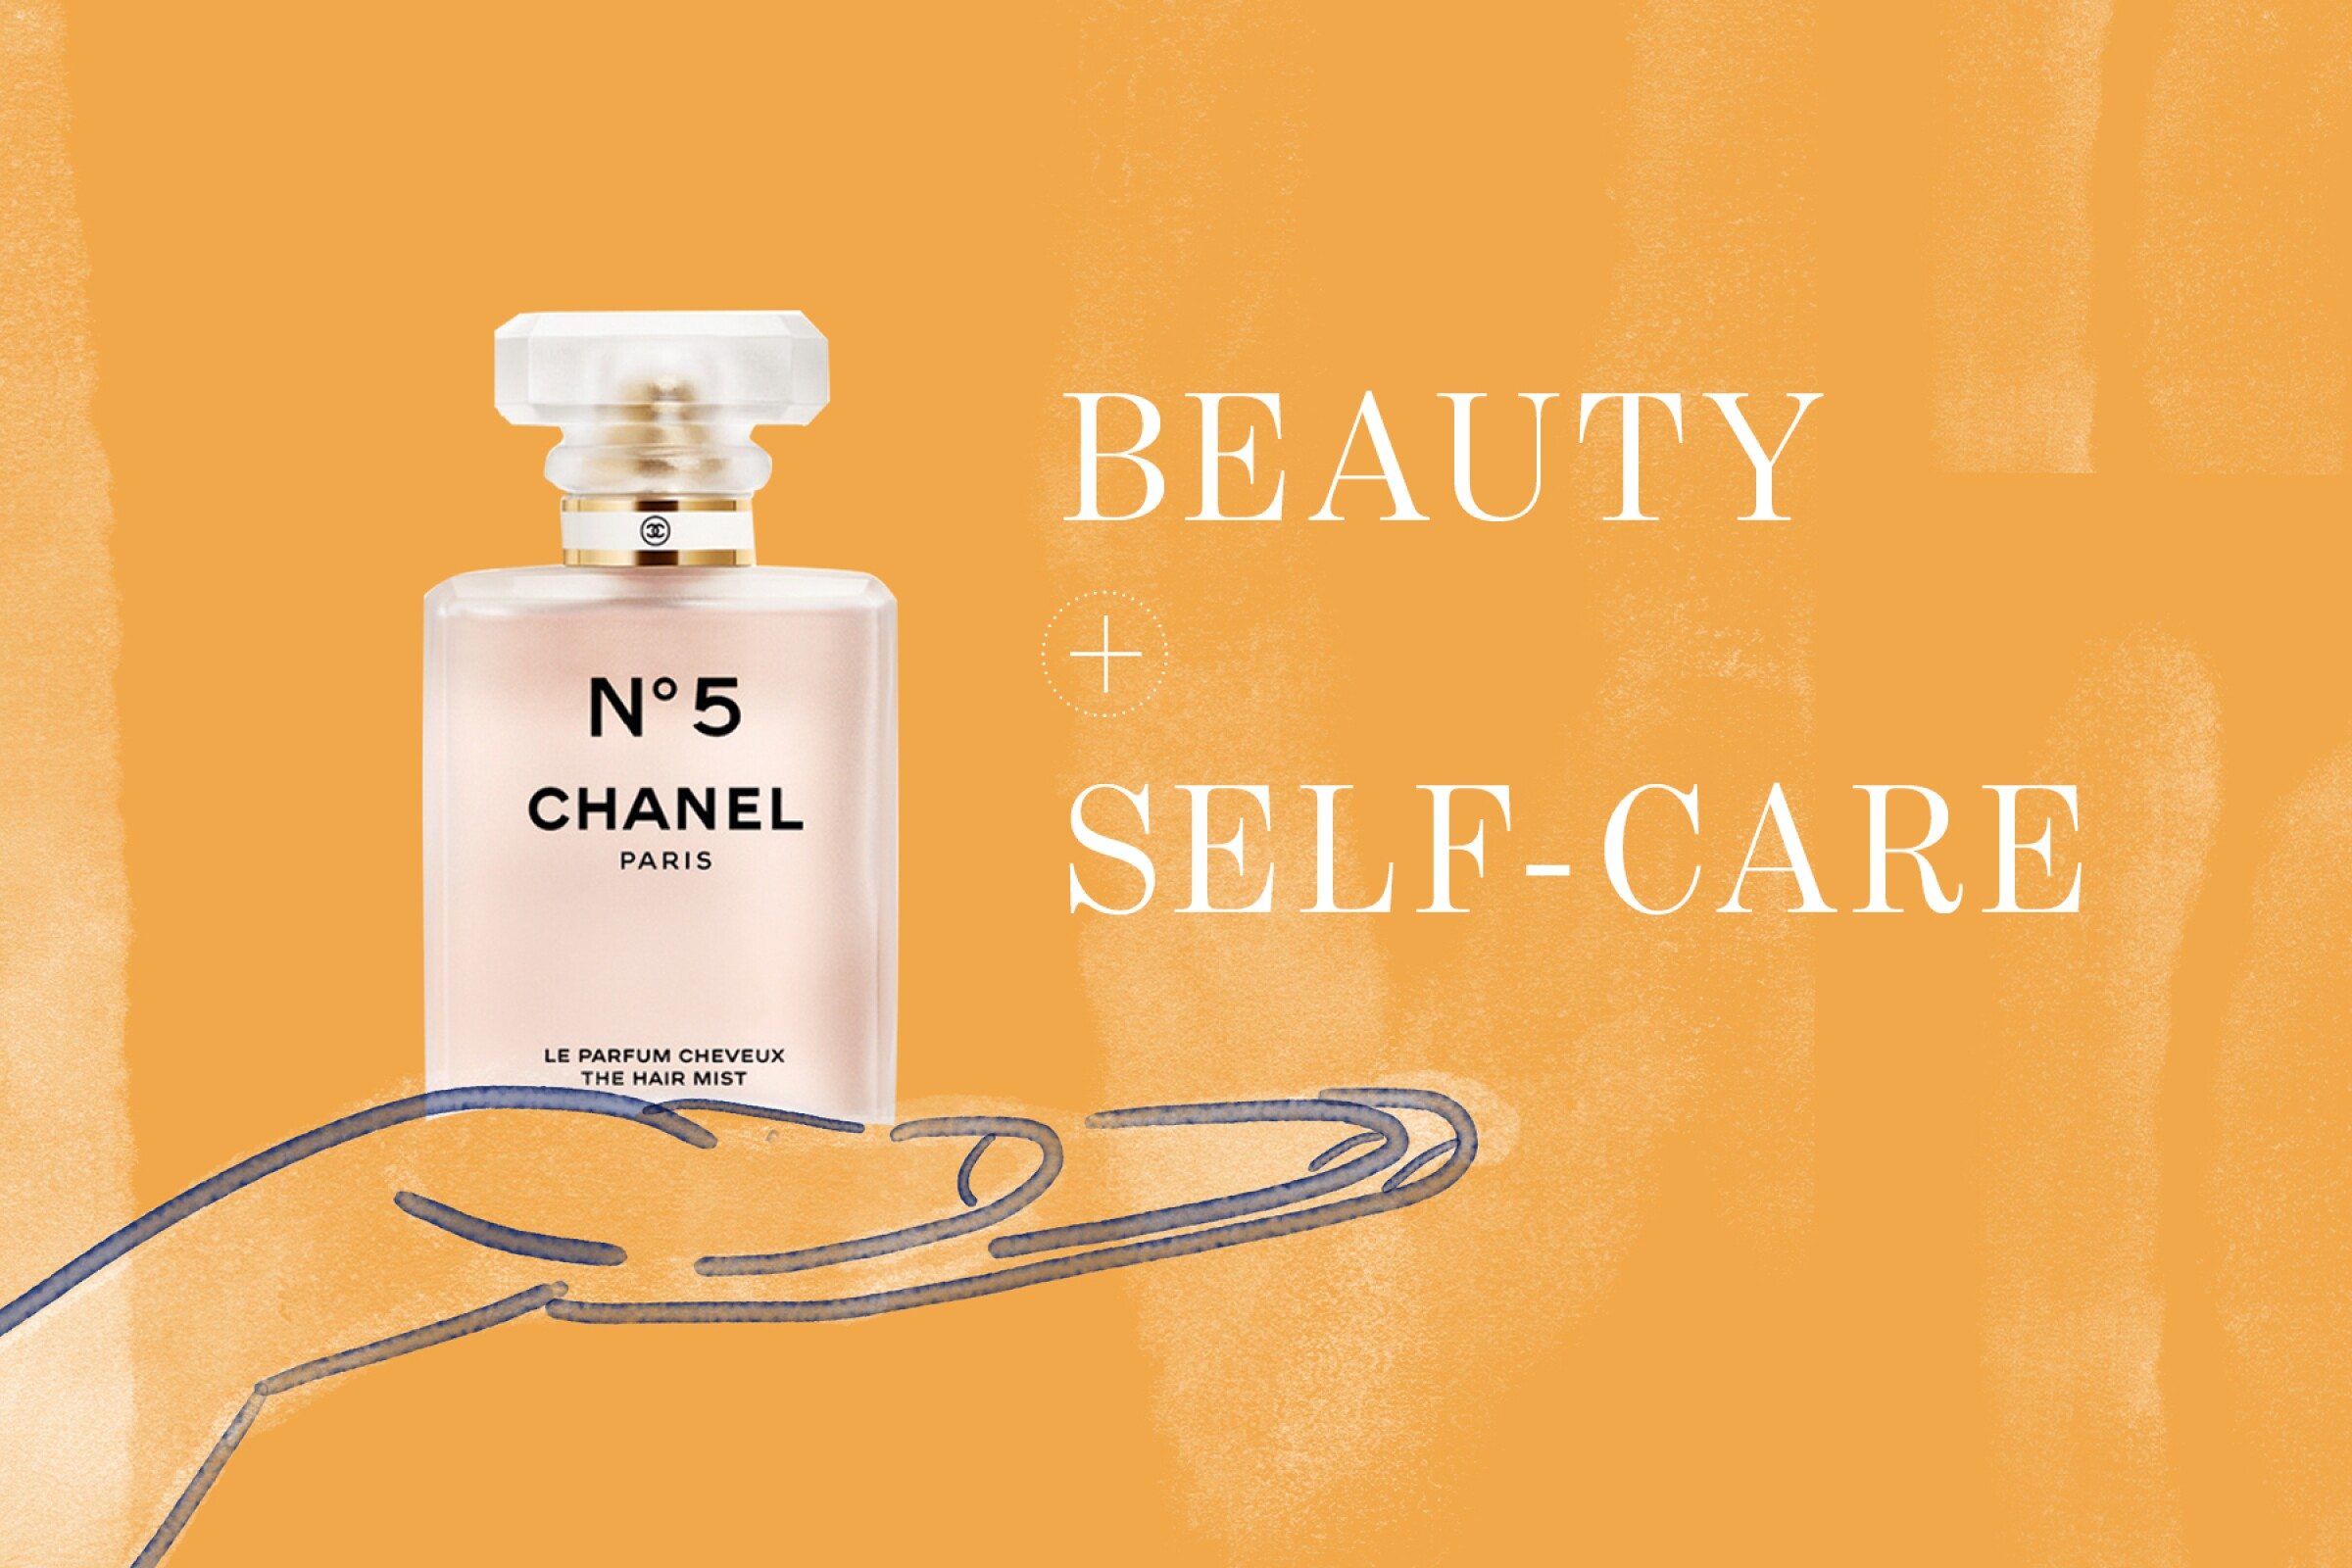 A photo illustration featuring a Chanel No. 5 bottle.